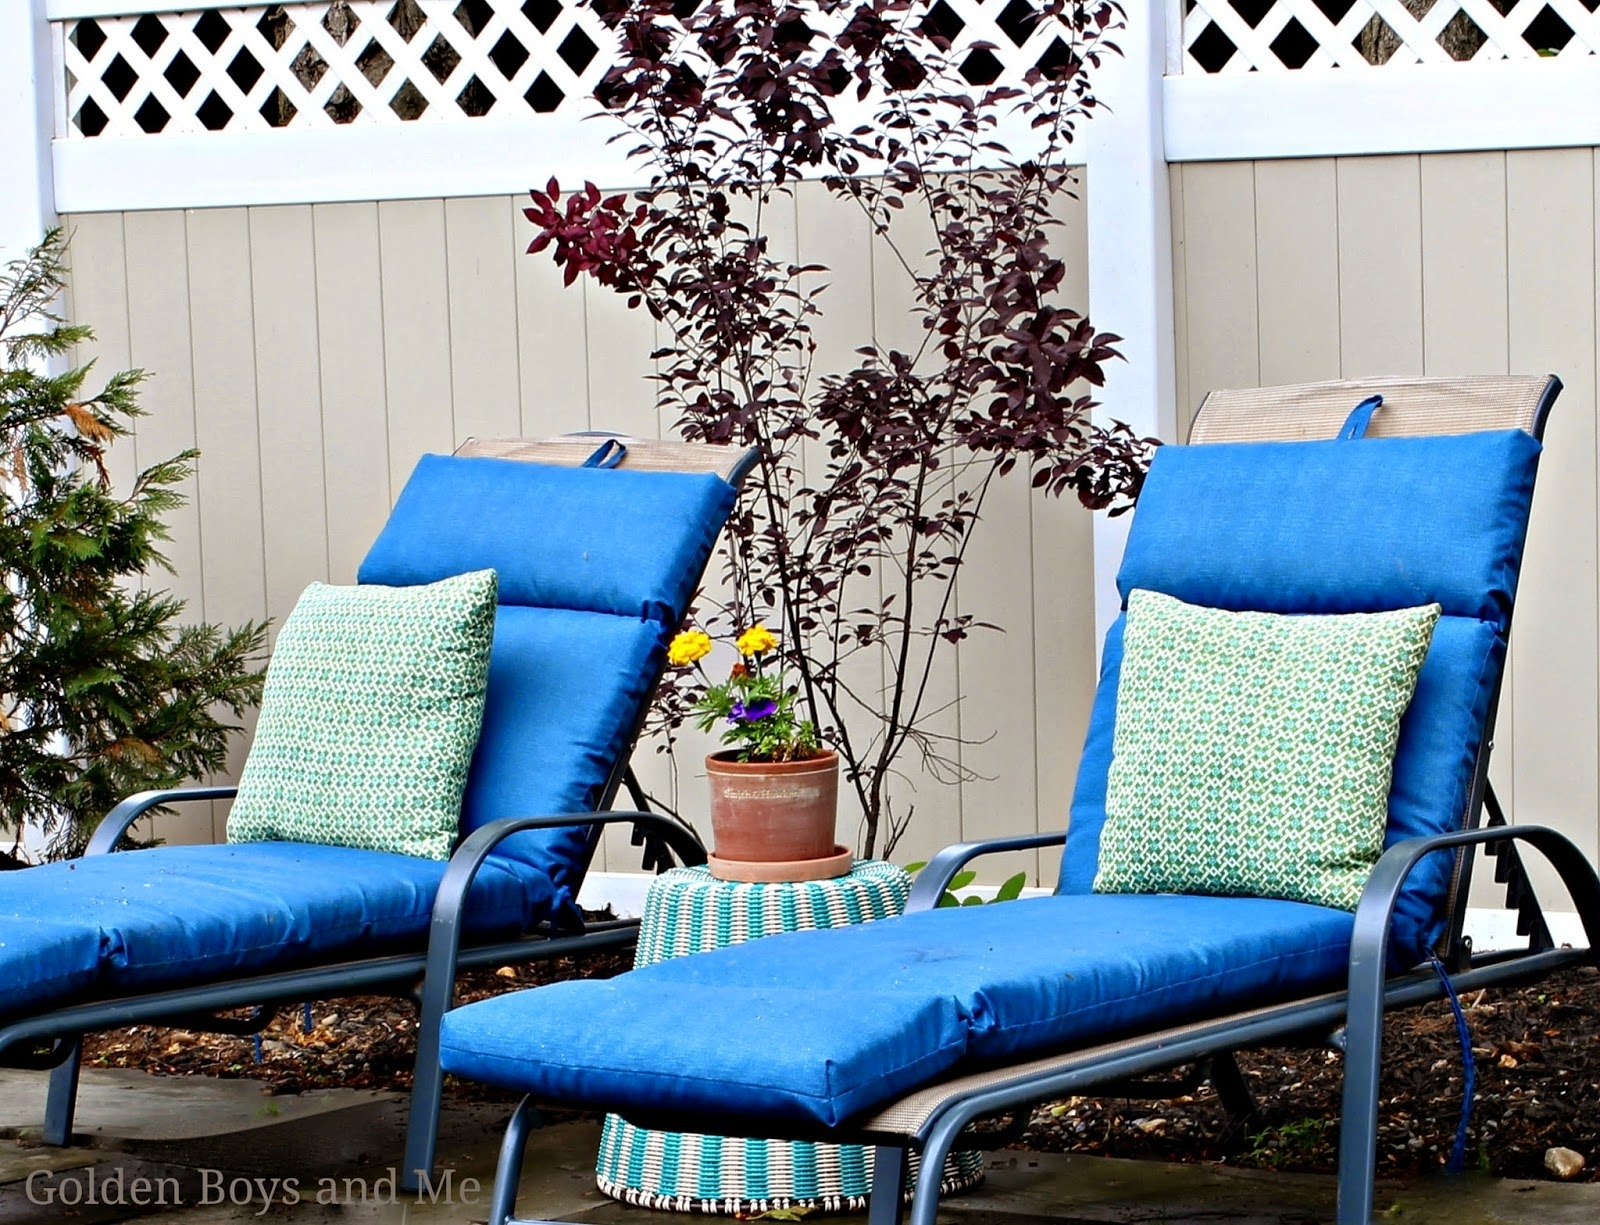 Image of: Patio Lowes Chaise Lounge Cushions Lowes Chaise Lounge Lowes Regarding Outdoor Lounge Chairs With Cushions Outdoor Lounge Chairs With Cushions